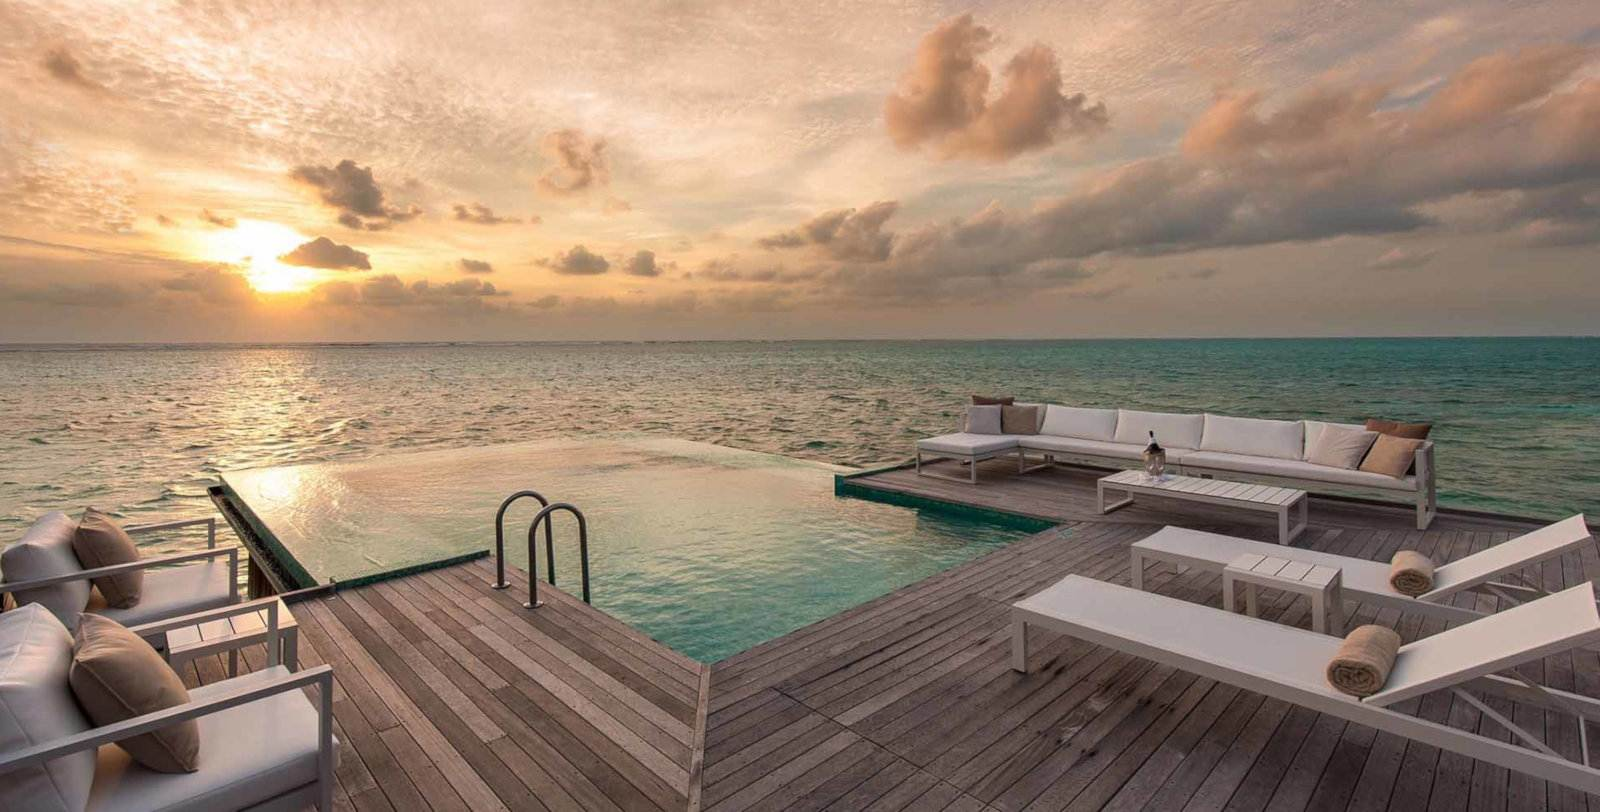 Gay travellers to the Maldives will love the romantic luxury at the Conrad resort.